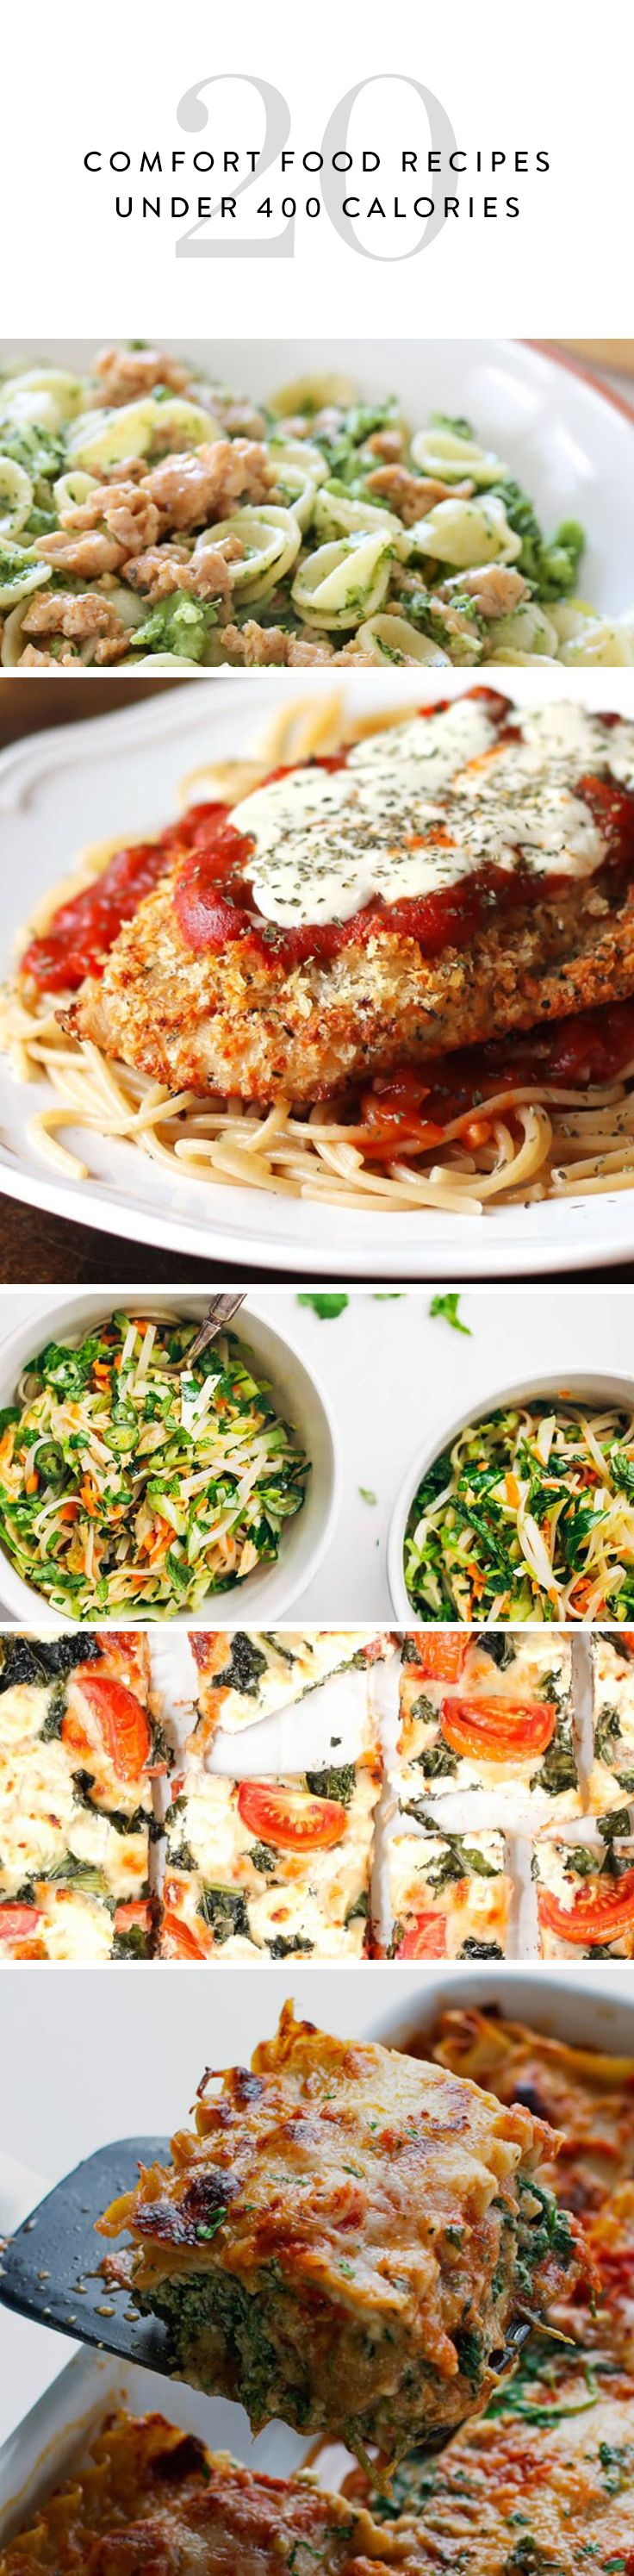 You know those nights when you're just really craving mac and cheese, but you really, really don't want to sabotage a whole day of eating healthy? We've got you covered. Here are 20 totally satisfying comfort-food recipes, all under 400 calories.